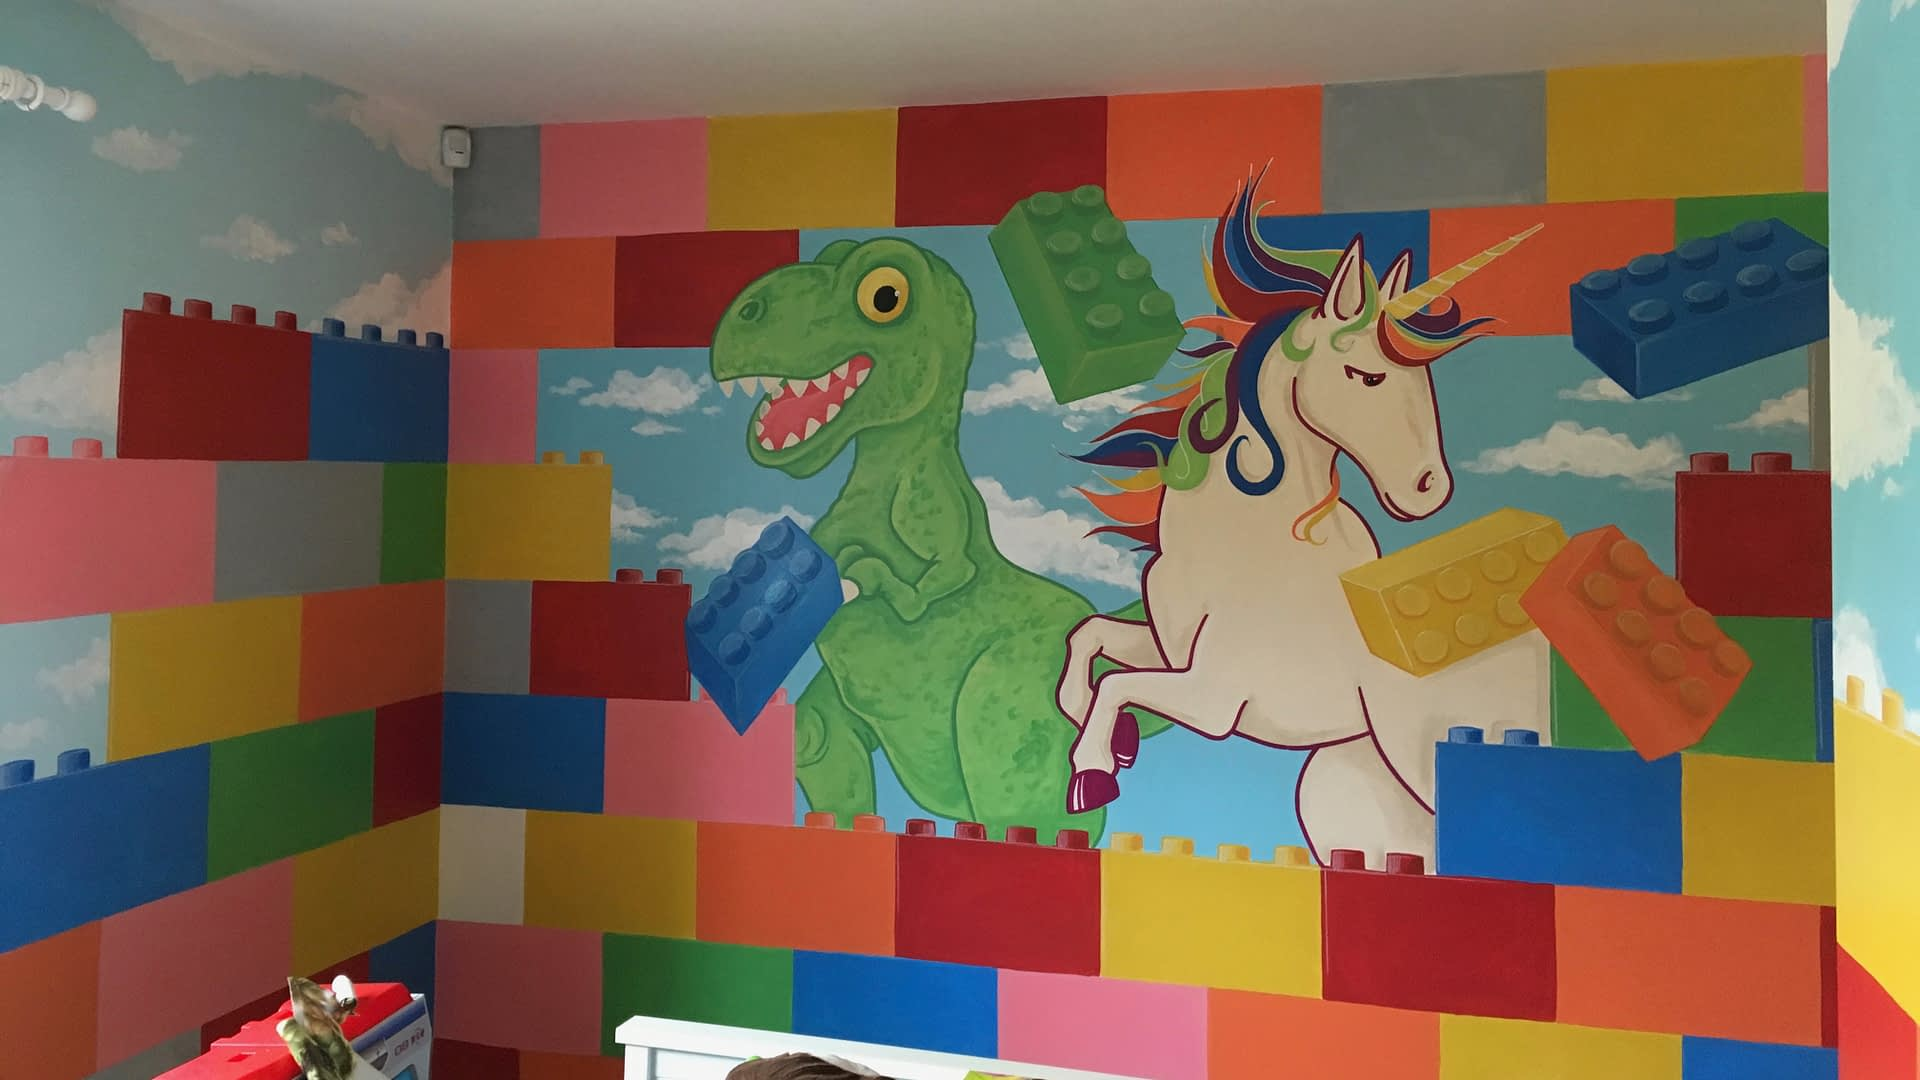 Lego with Dinosaur and Unicorn Mural